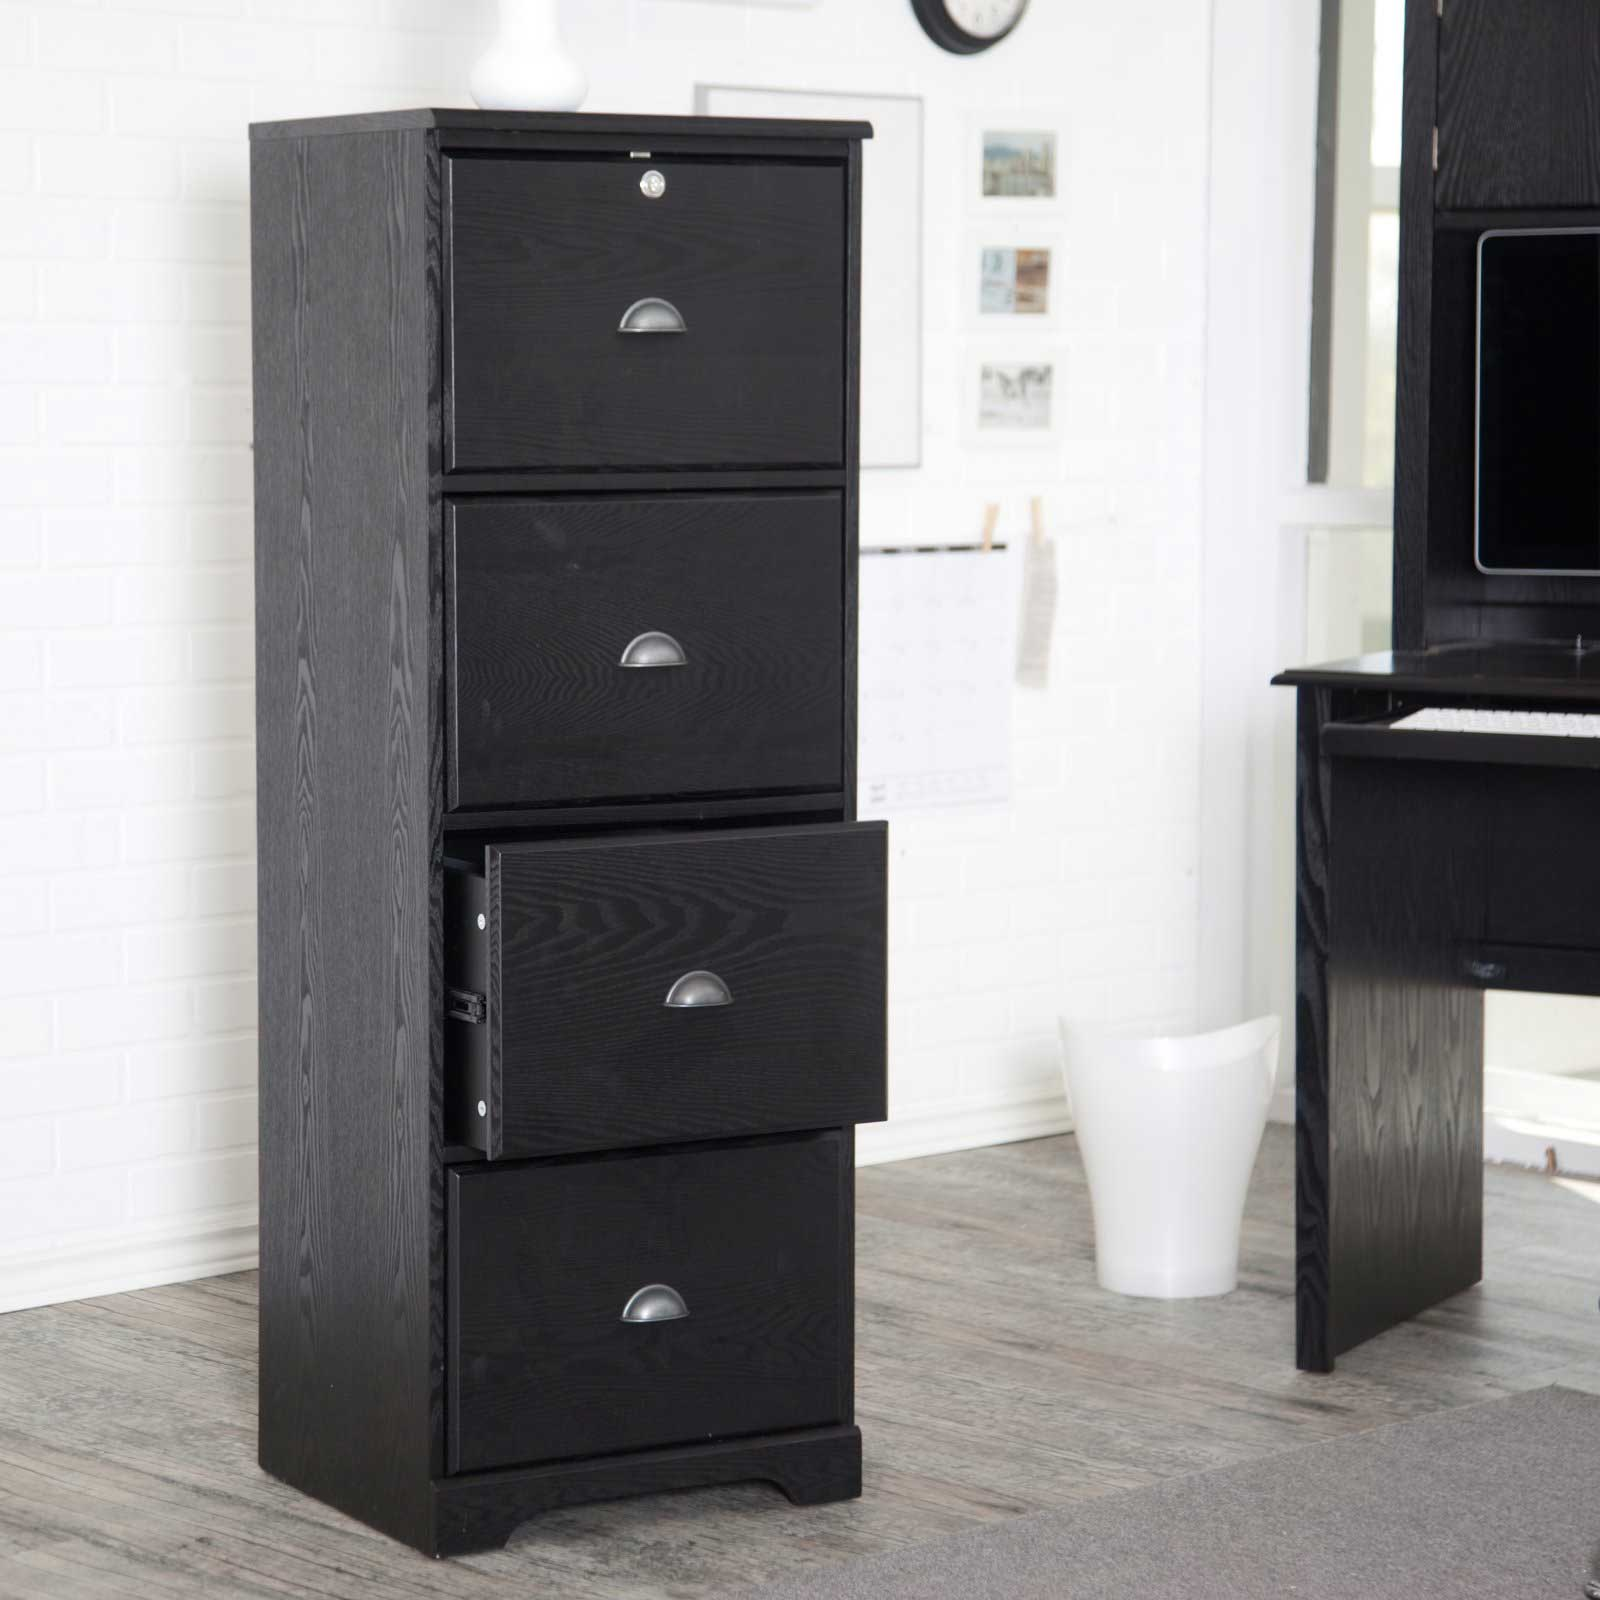 Hawthorne 4 Drawer Solid Wood Black Vertical Filing Cabinets